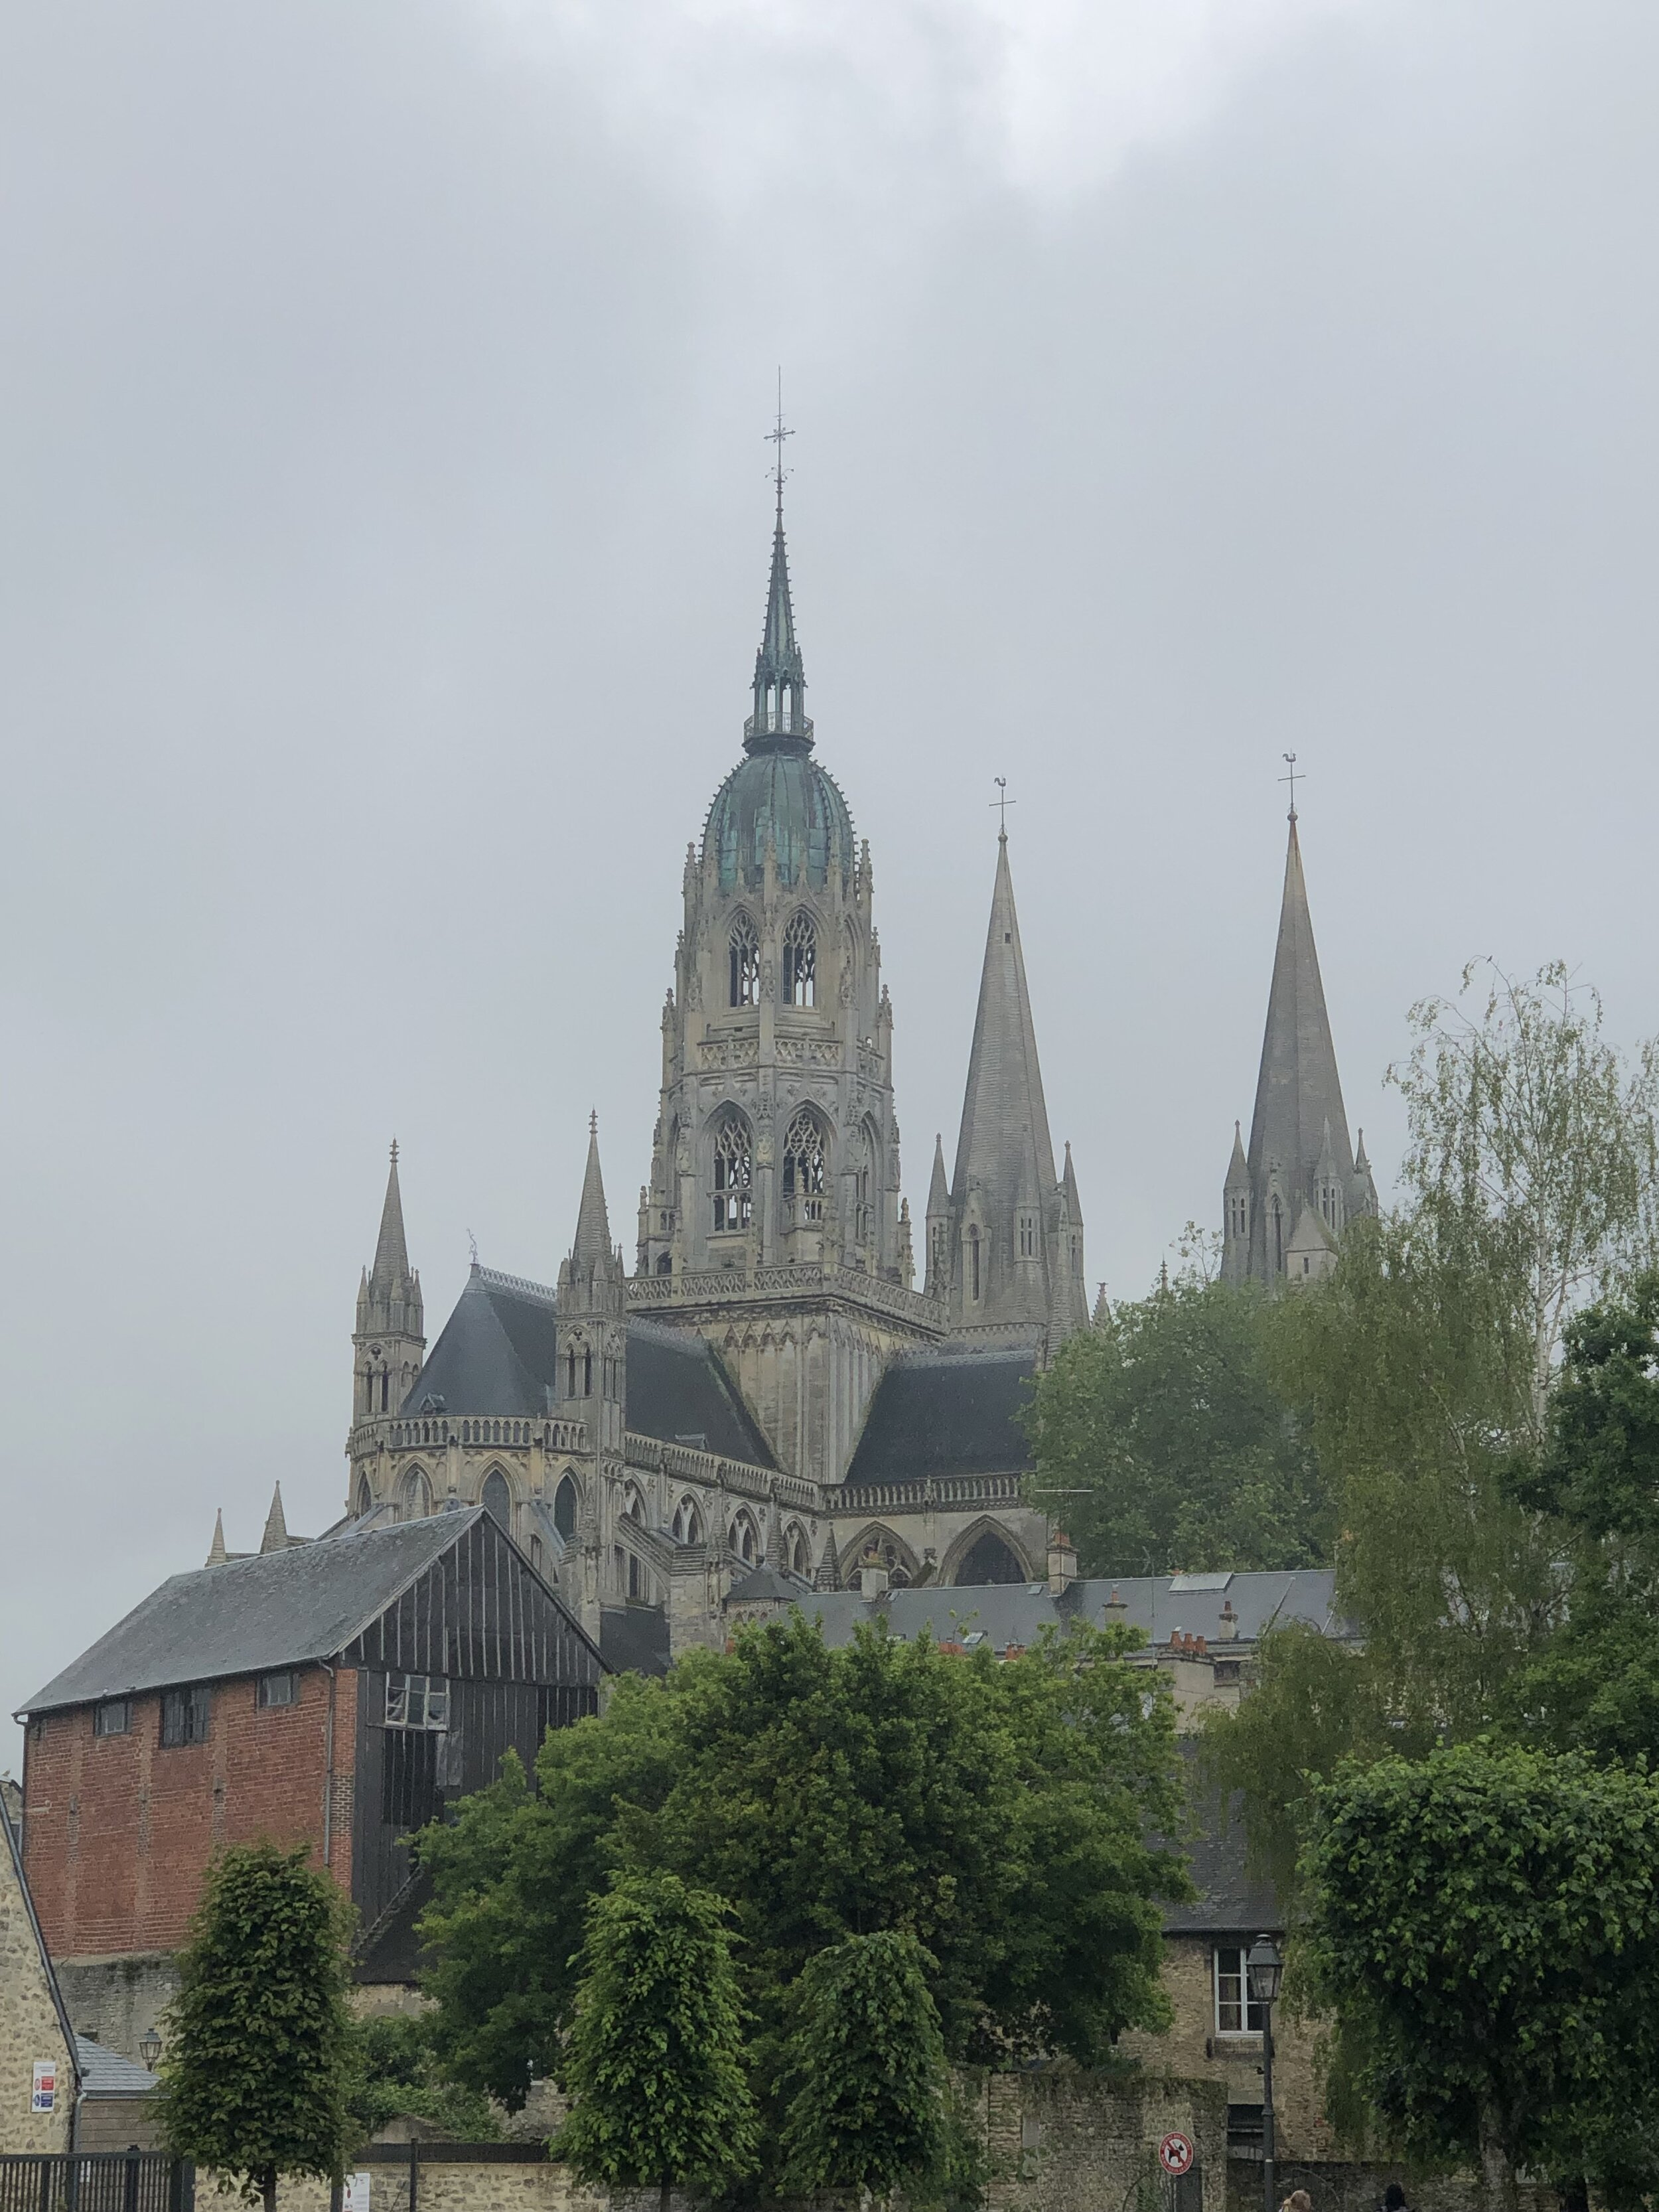 View of Bayeux Cathedral